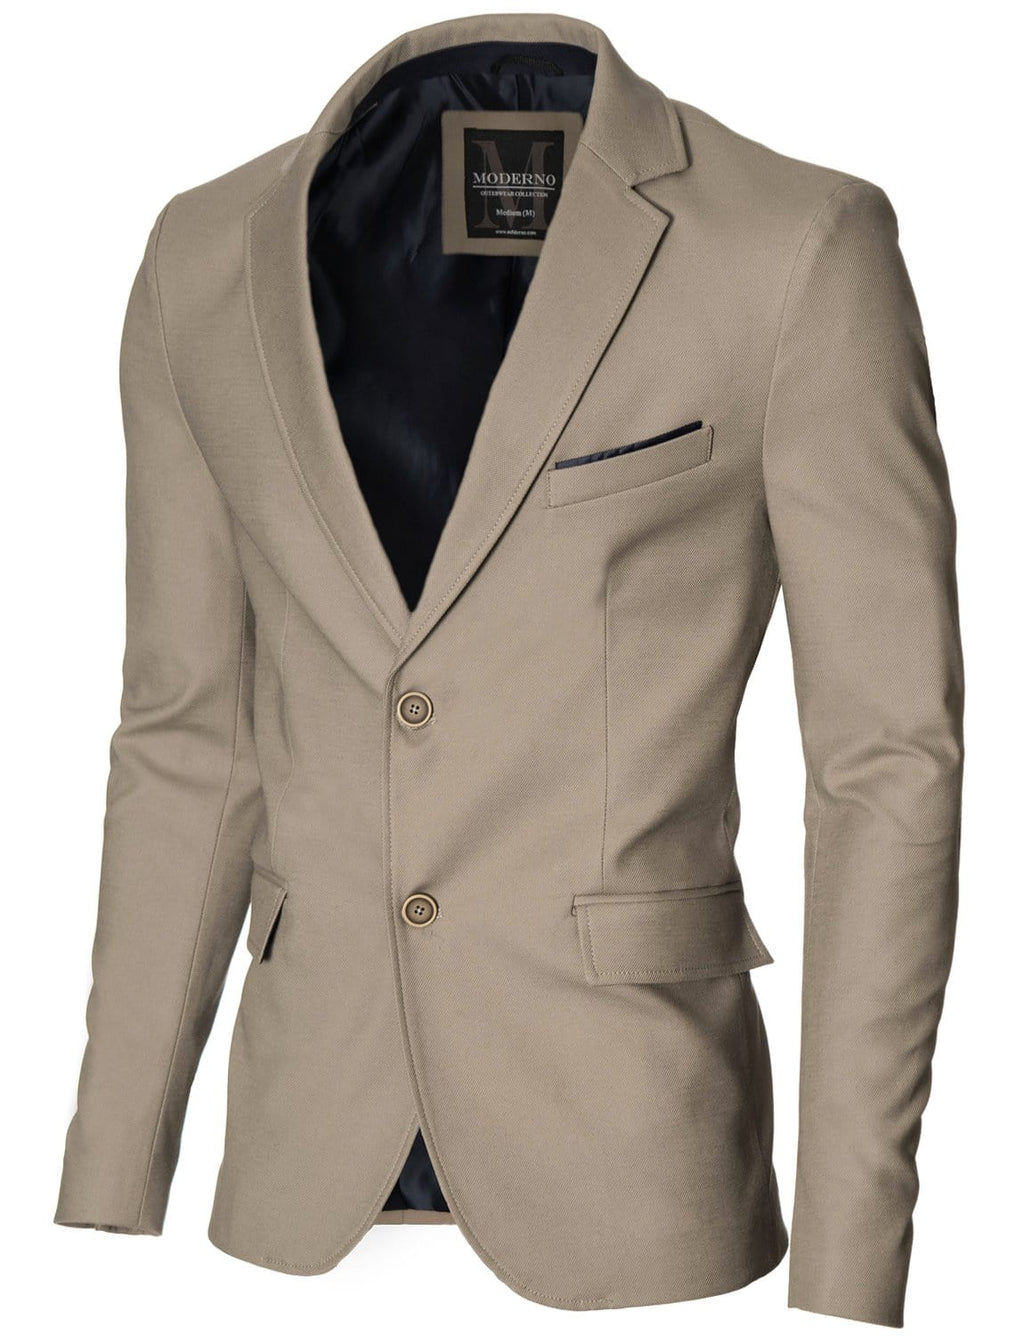 Mens slim fit 2 buttons cotton blazer sport coat beige (MOD14517B)